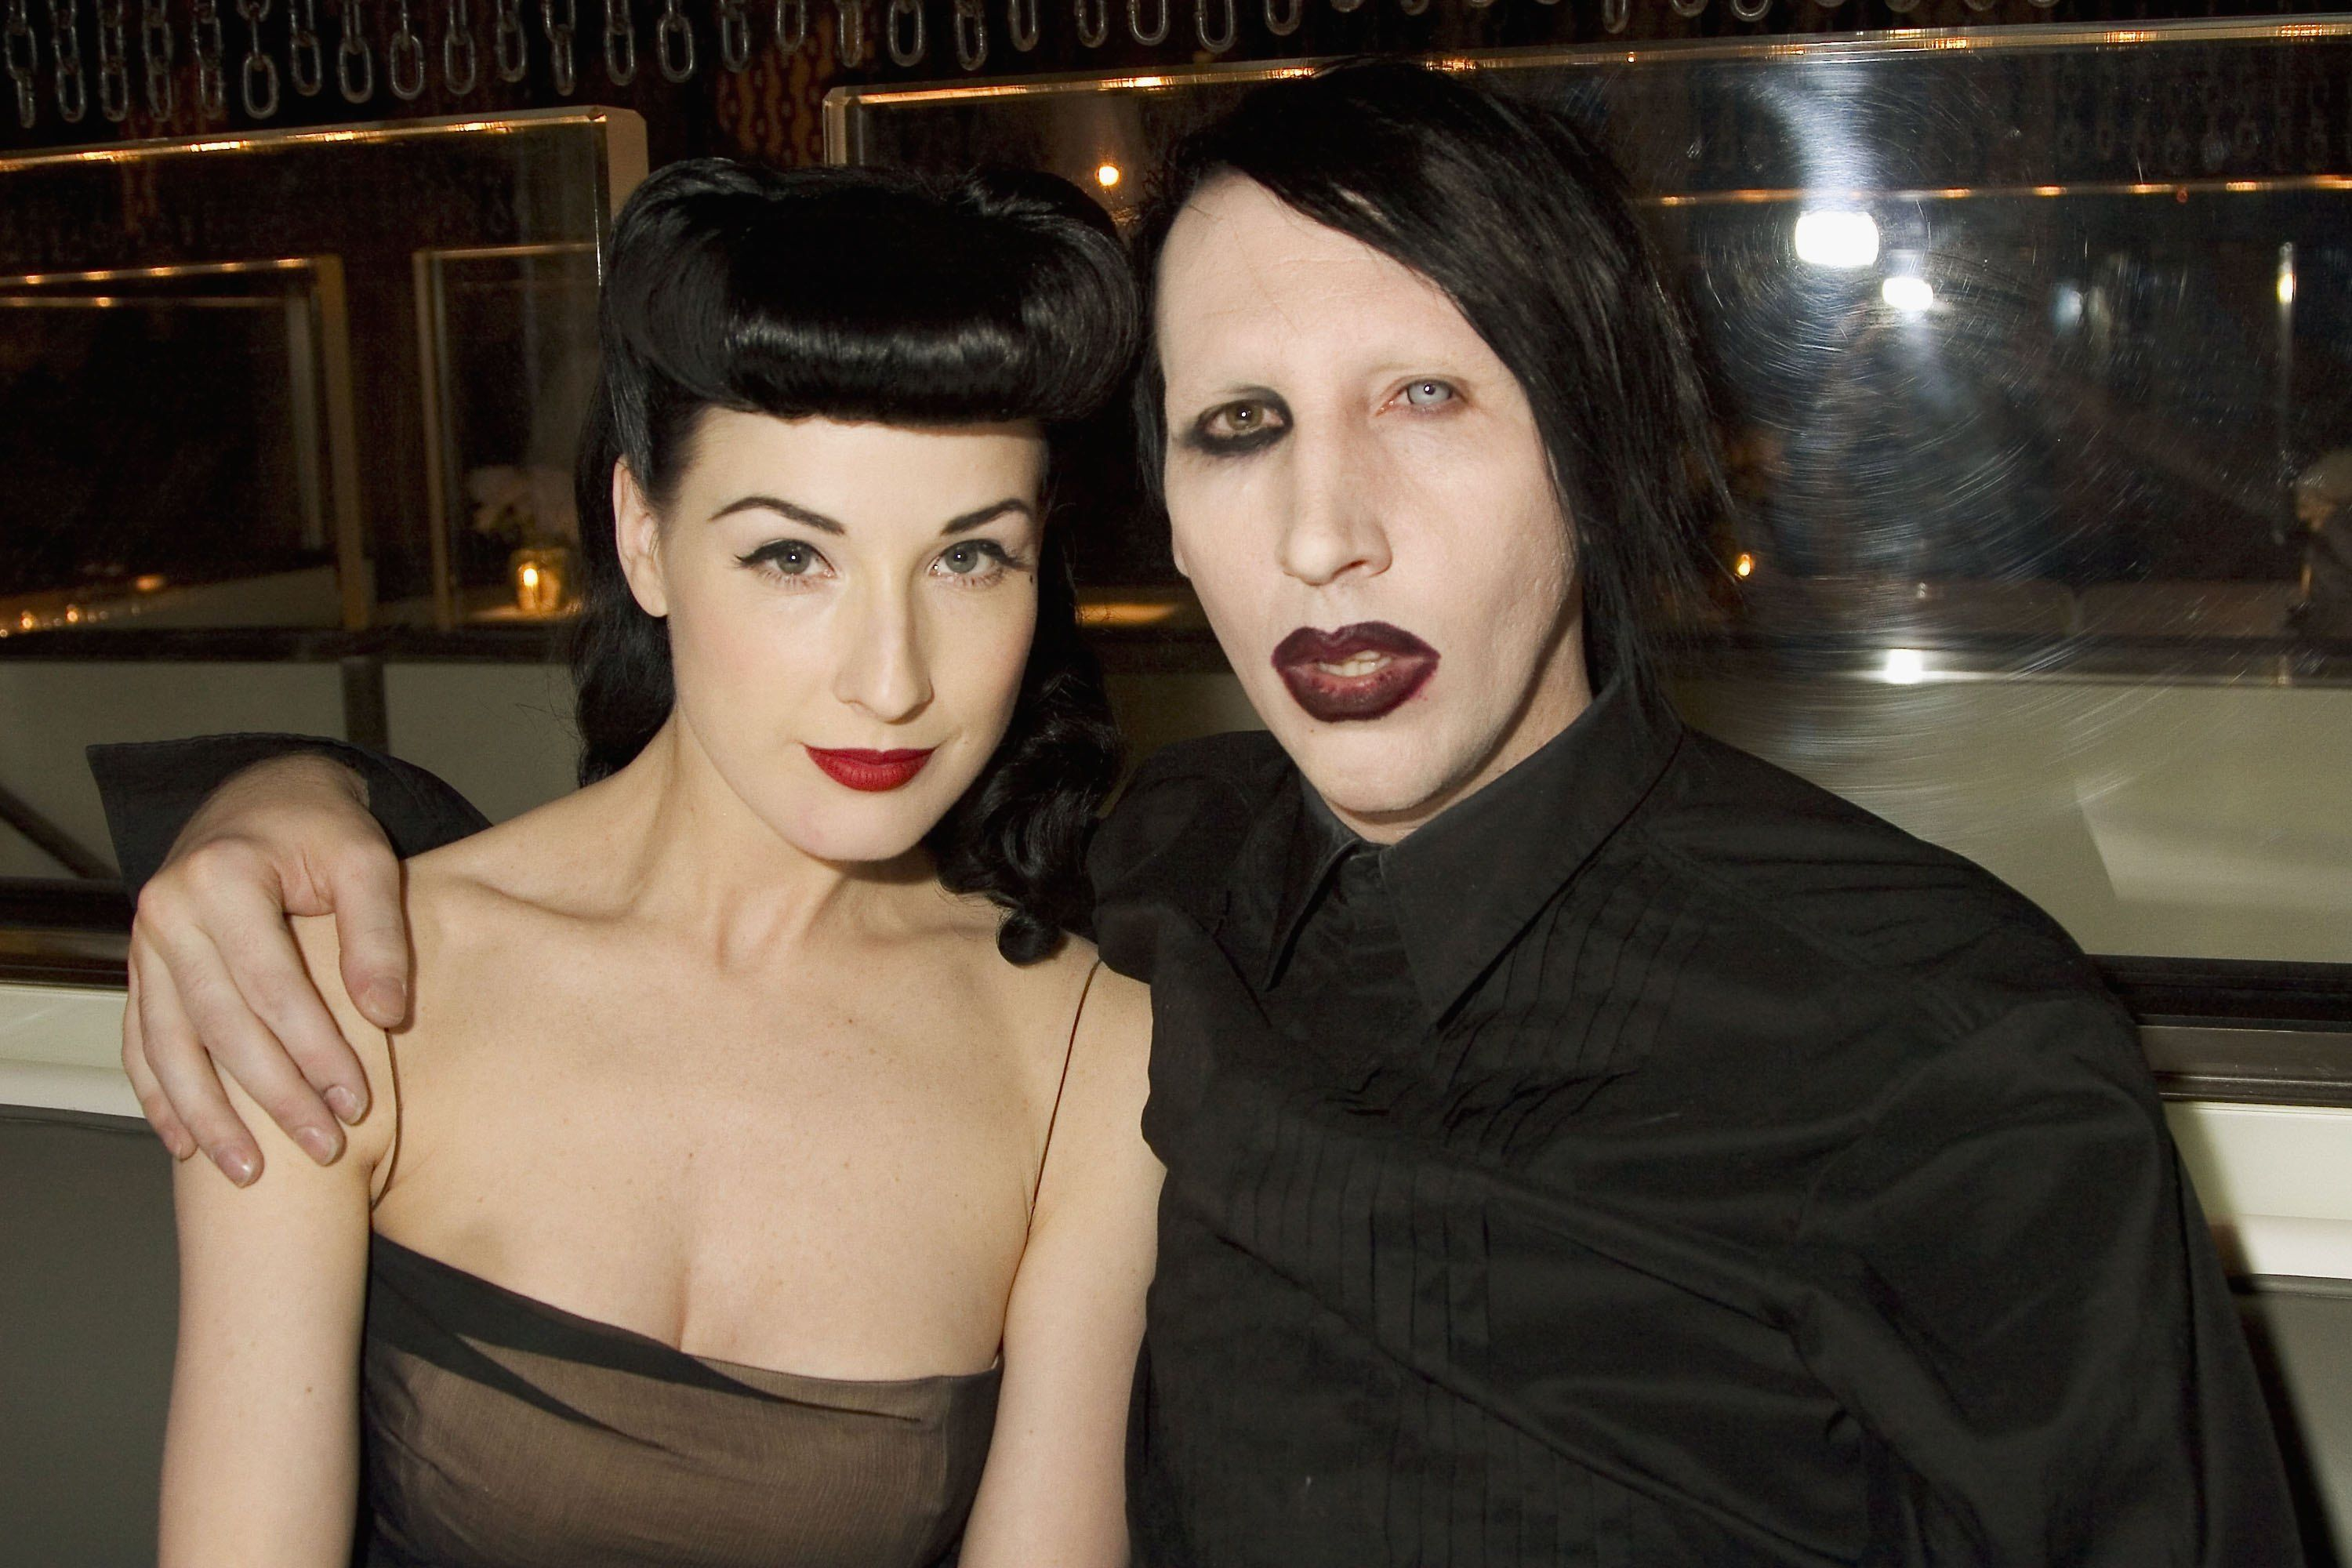 Dita Von Teese and Marilyn Manson at the opening of MR CHOW Tribeca in 2006 in New York City | Source: Getty Images